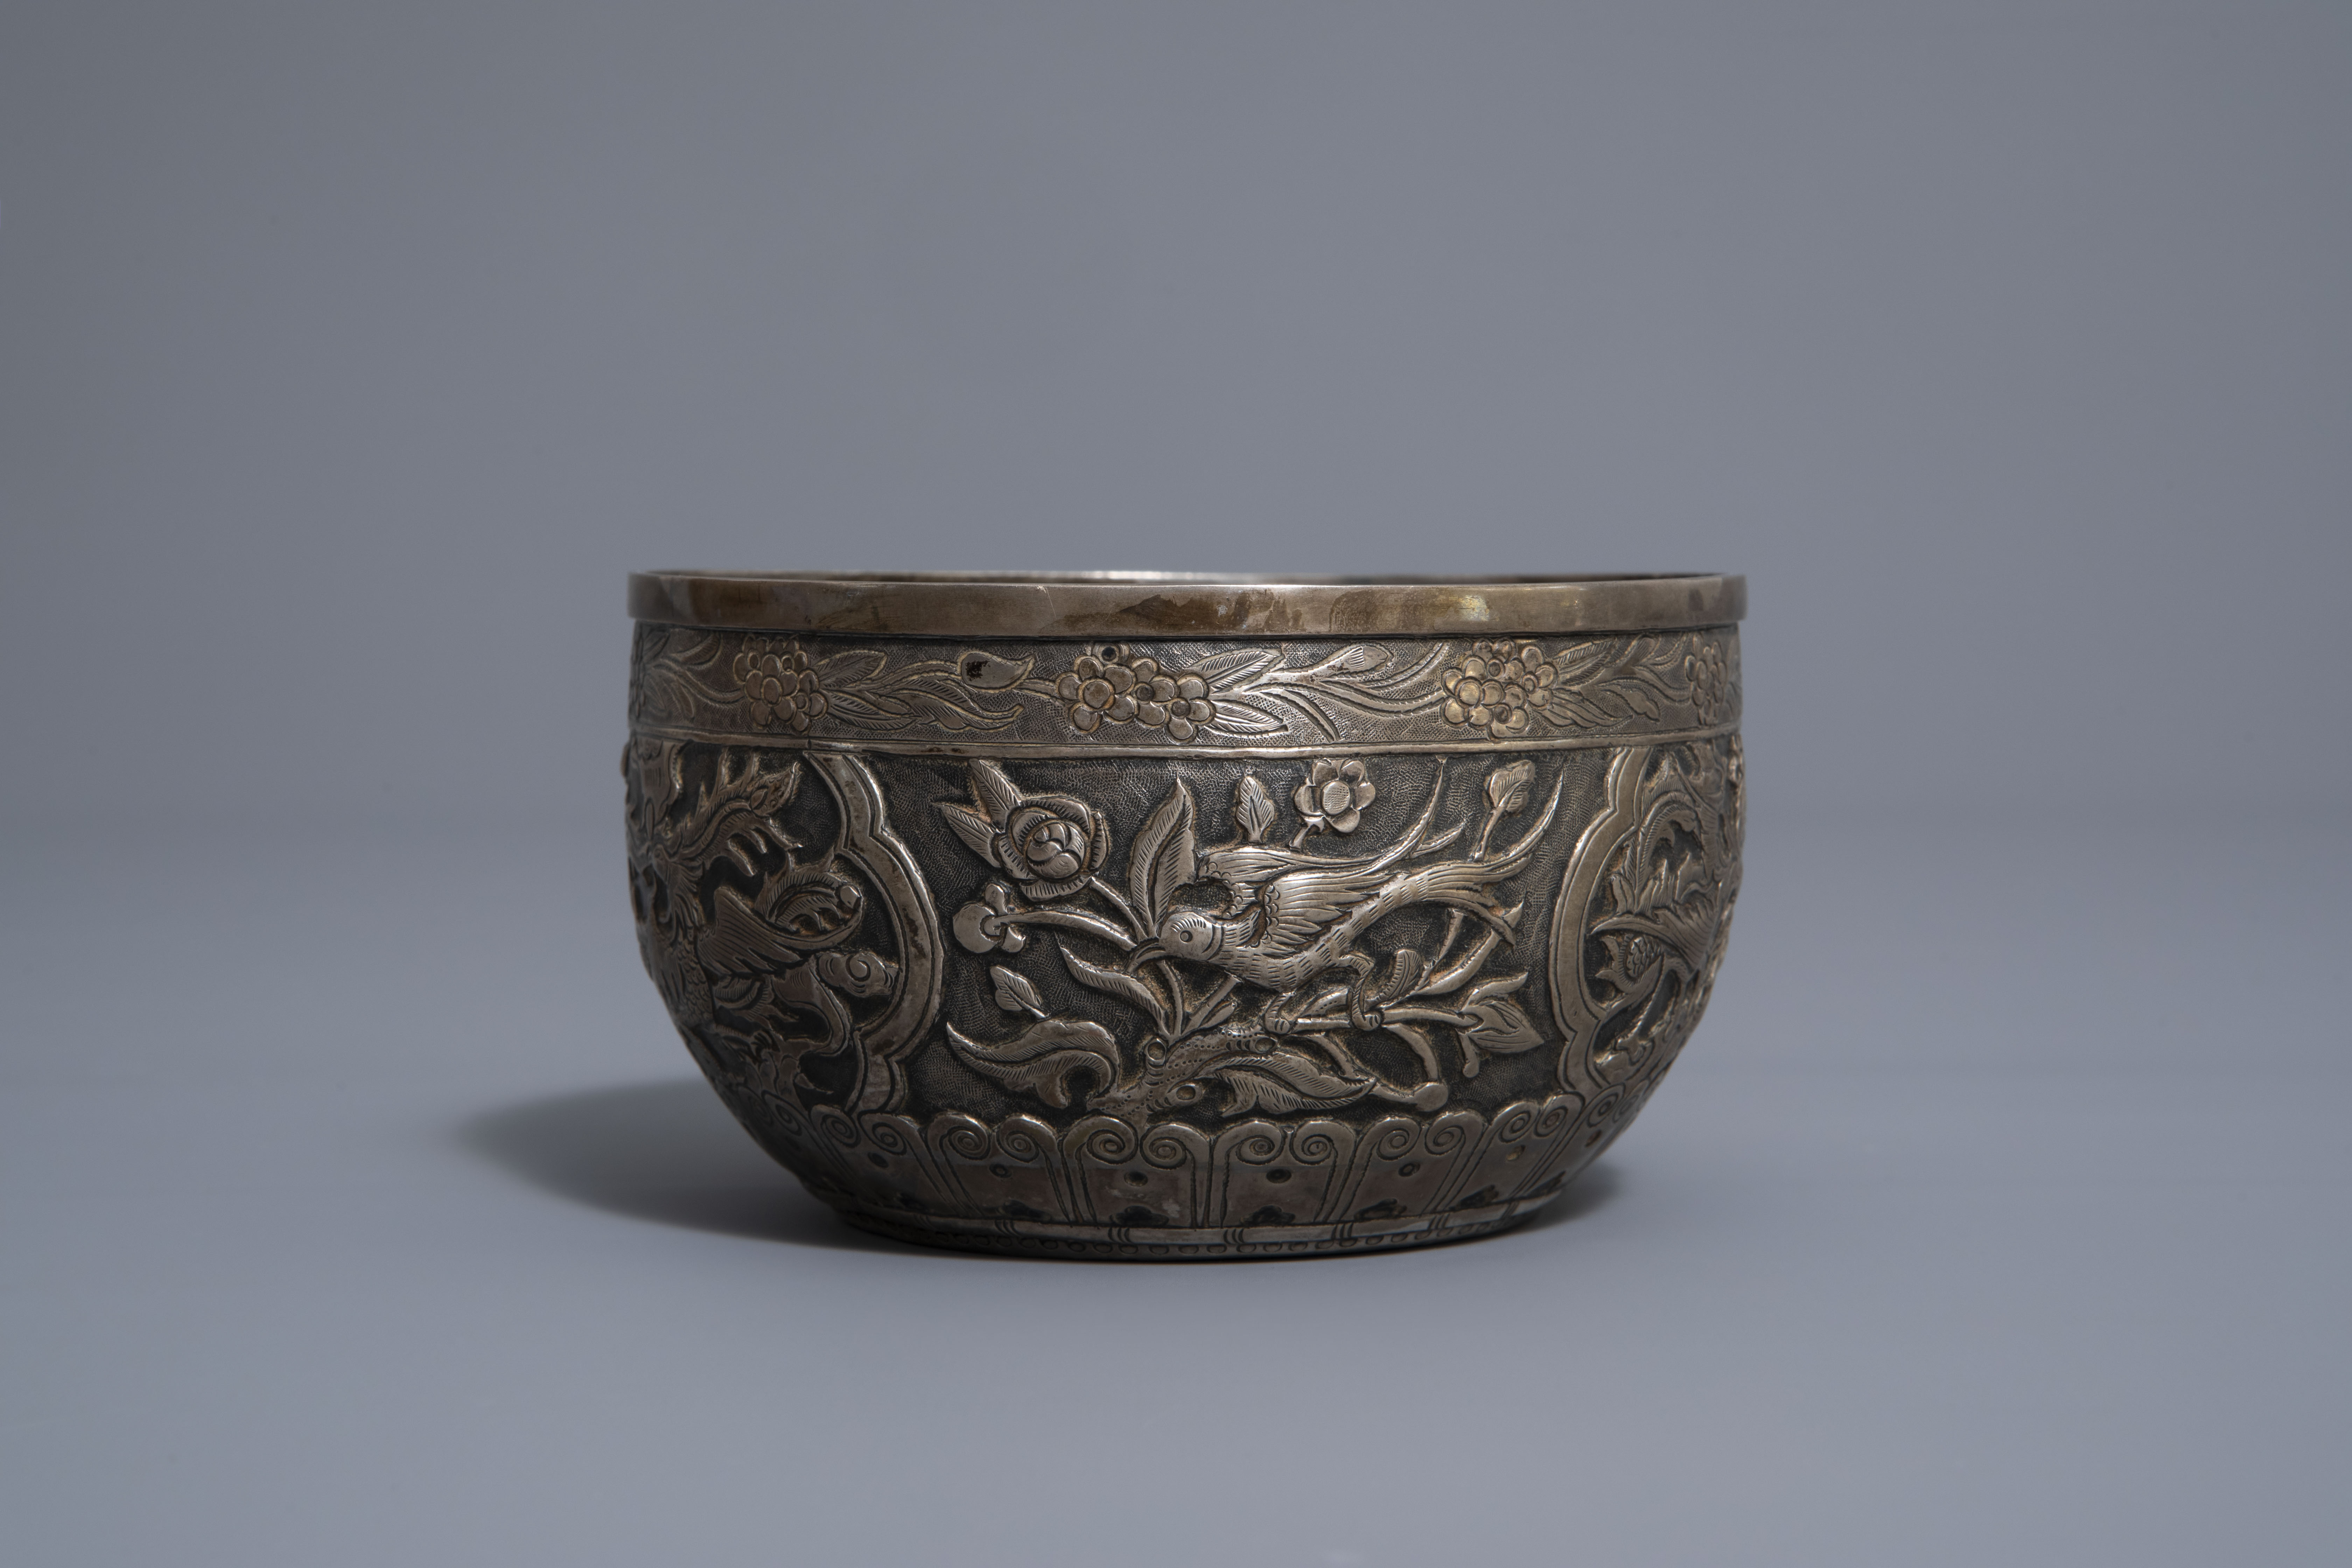 Five Chinese famille rose and silver cups and saucers and a bowl, 19th/20th C. - Image 11 of 17